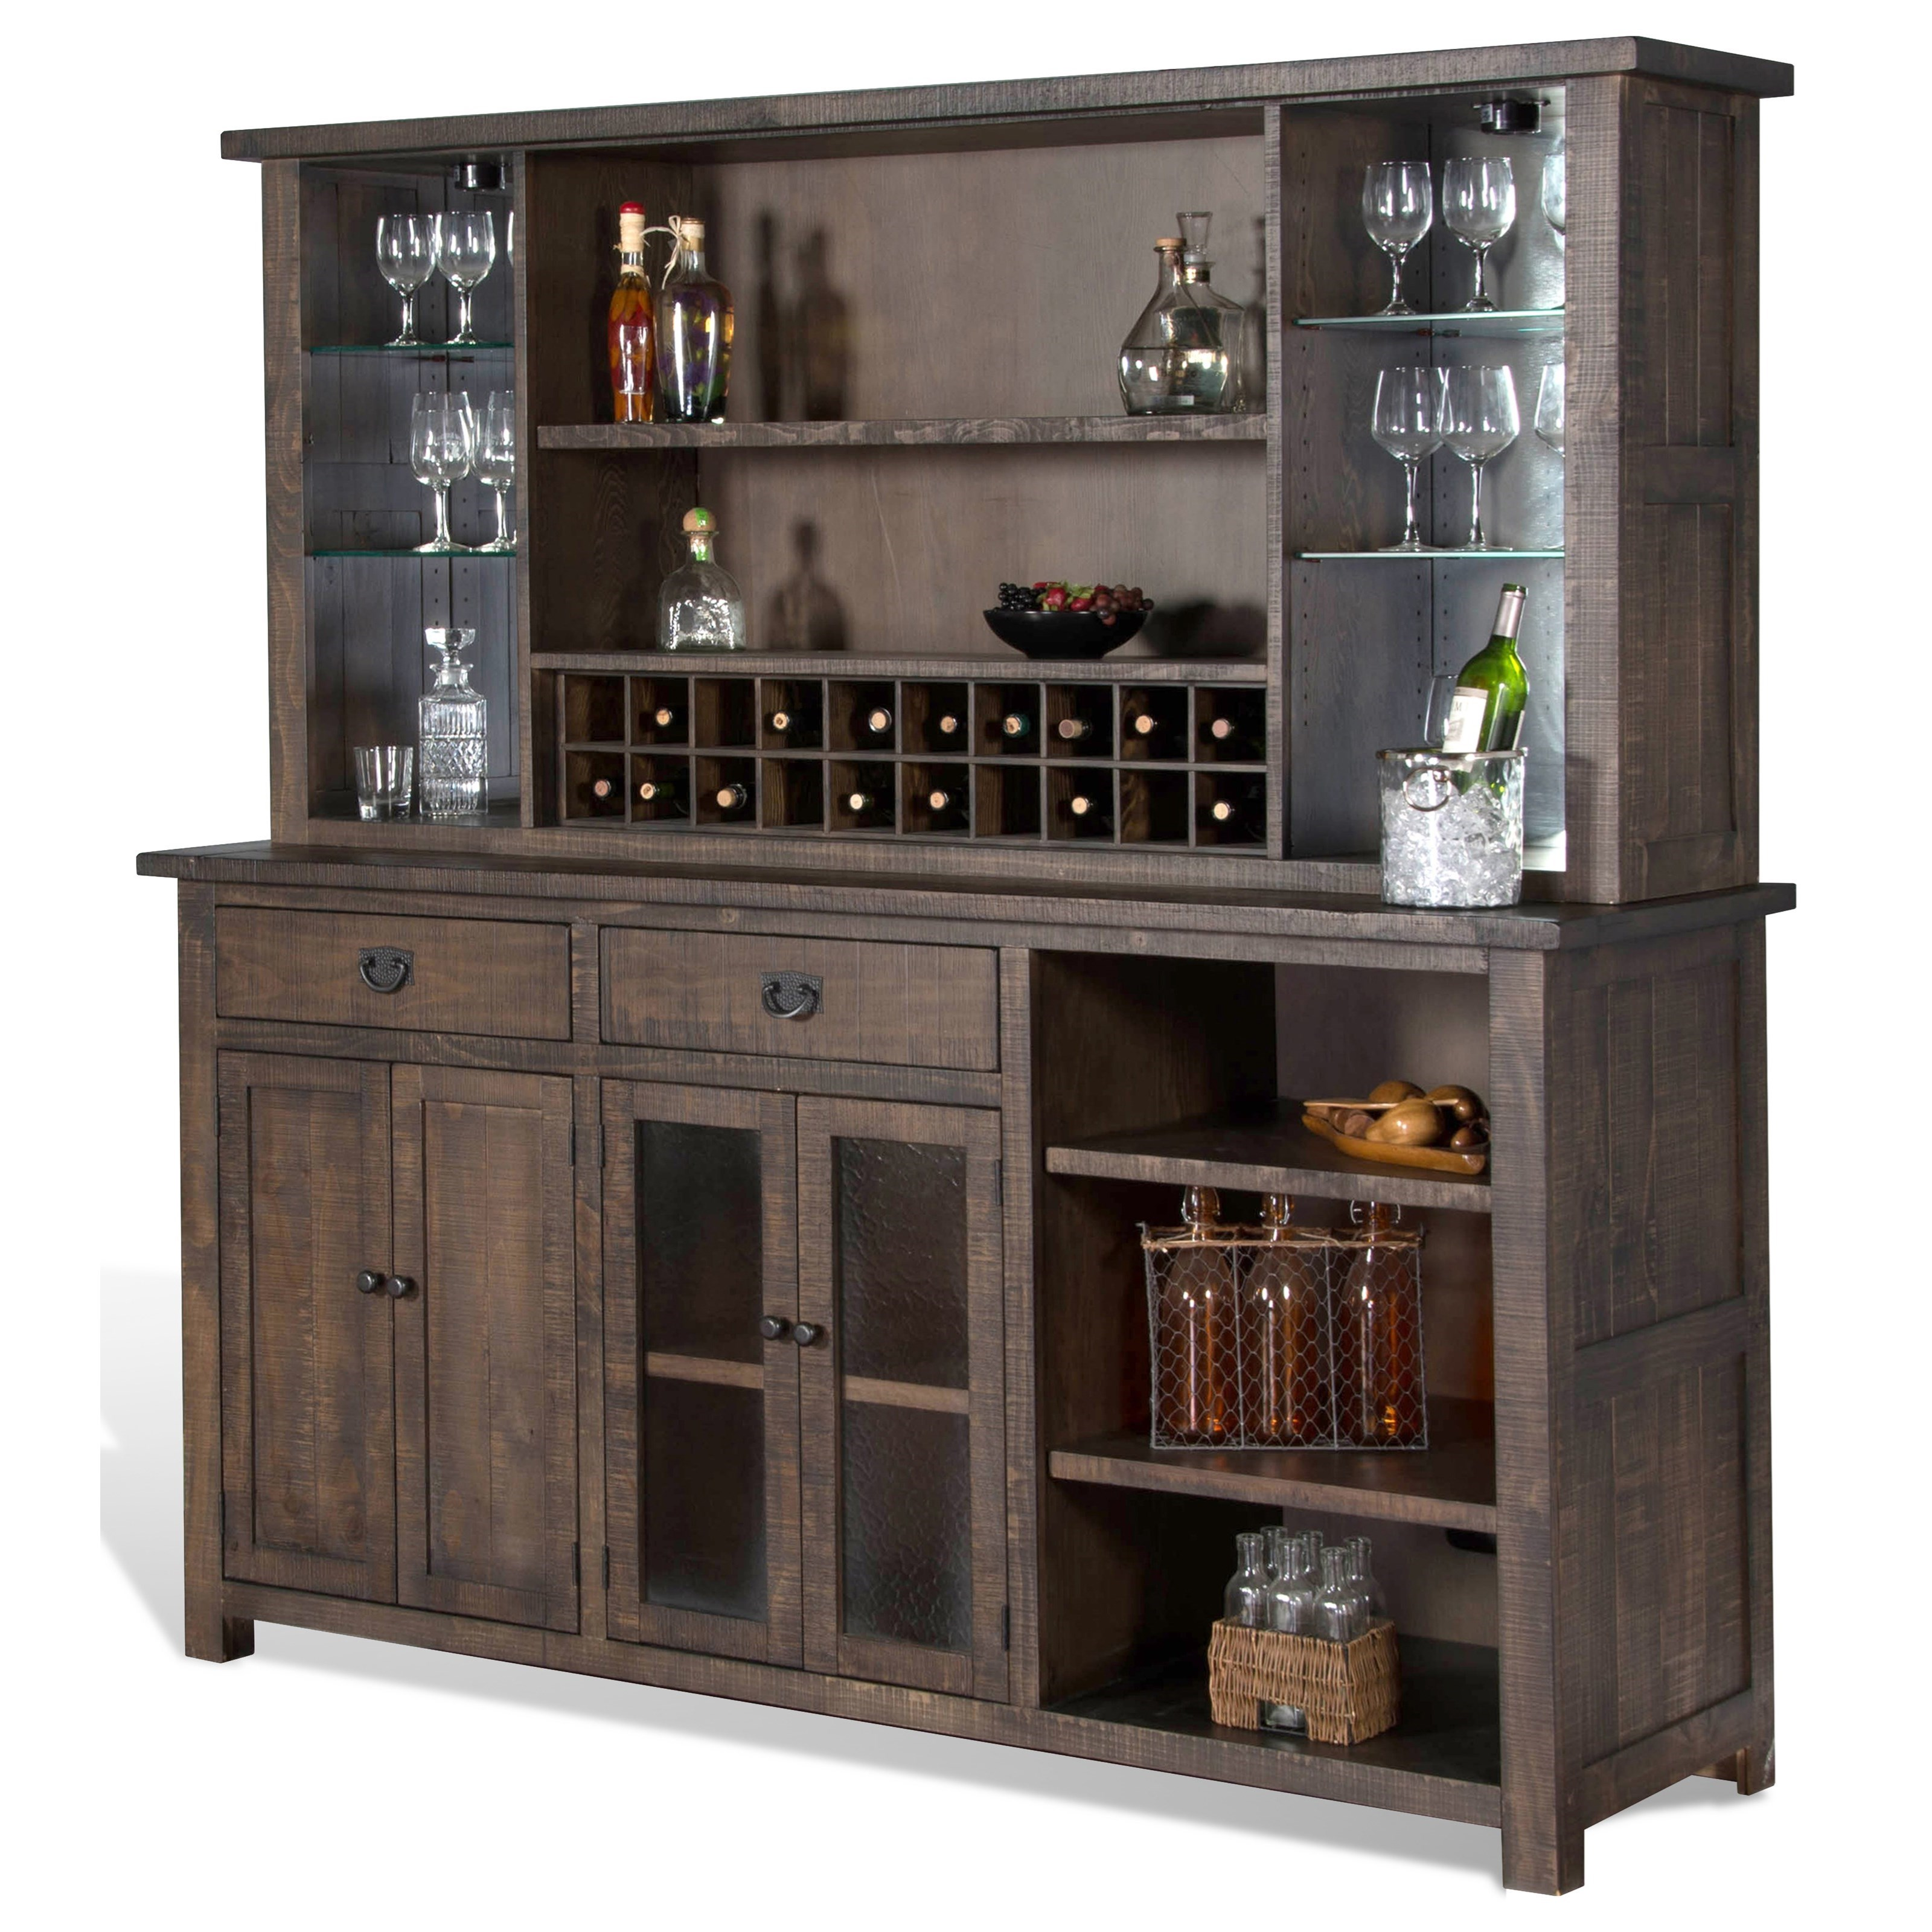 Sunny designs homestead 1969tl back bar furniture and for Homestead furniture and appliances